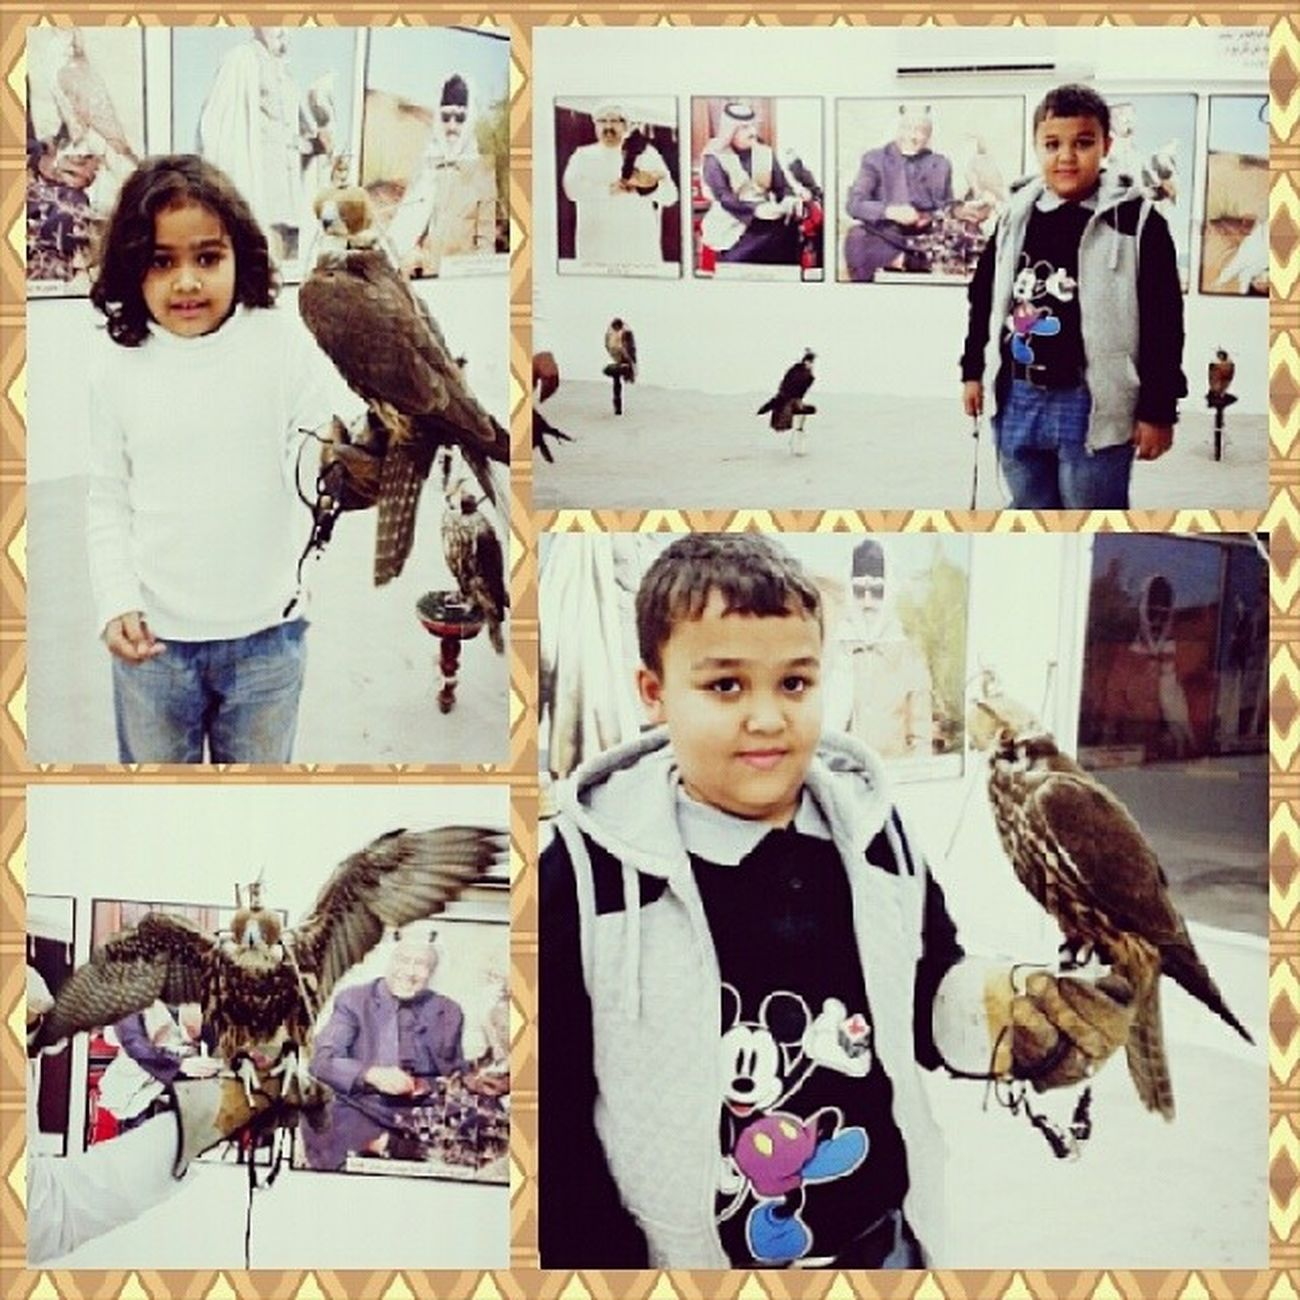 Falcons Falcon Atlanta Love qtr redskins جارح الحر kwait الجارح جير natura birds kids cute love family children life instababy sweet instagood baby childrenphoto beautiful child kid bahrain